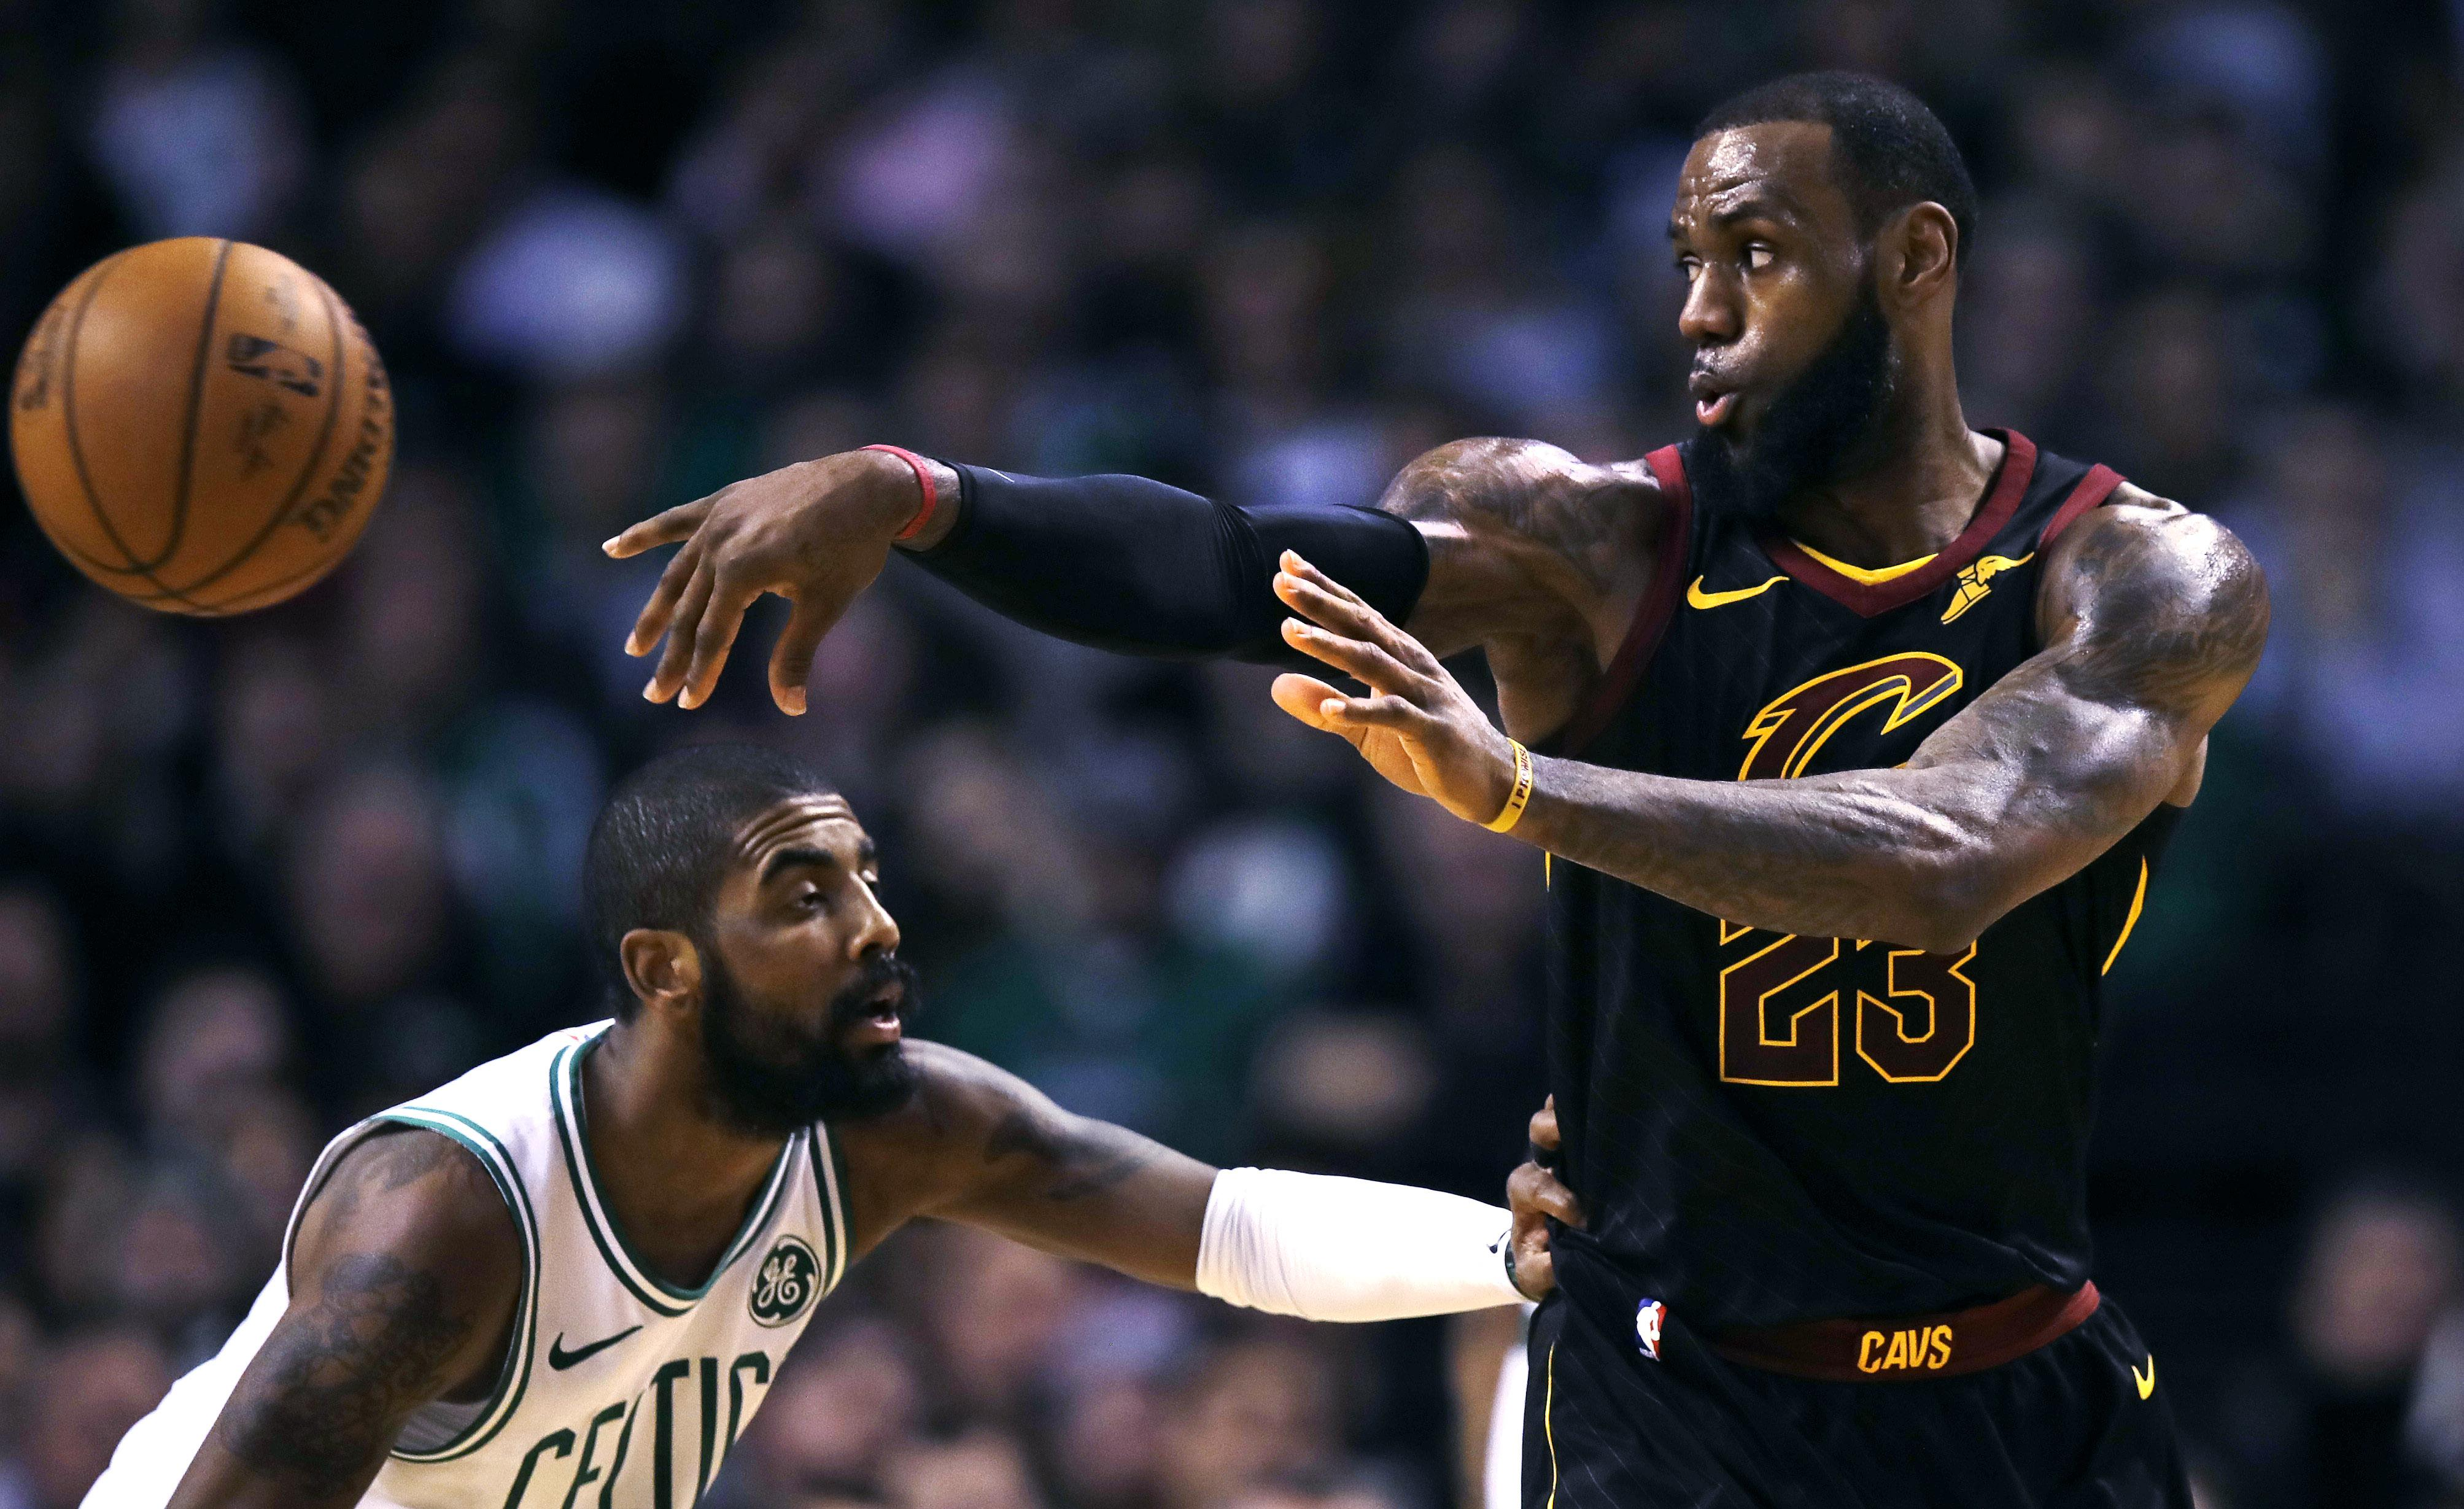 f157ffc82af1 Cleveland Cavaliers forward LeBron James (23) passes the ball as Boston  Celtics guard Kyrie